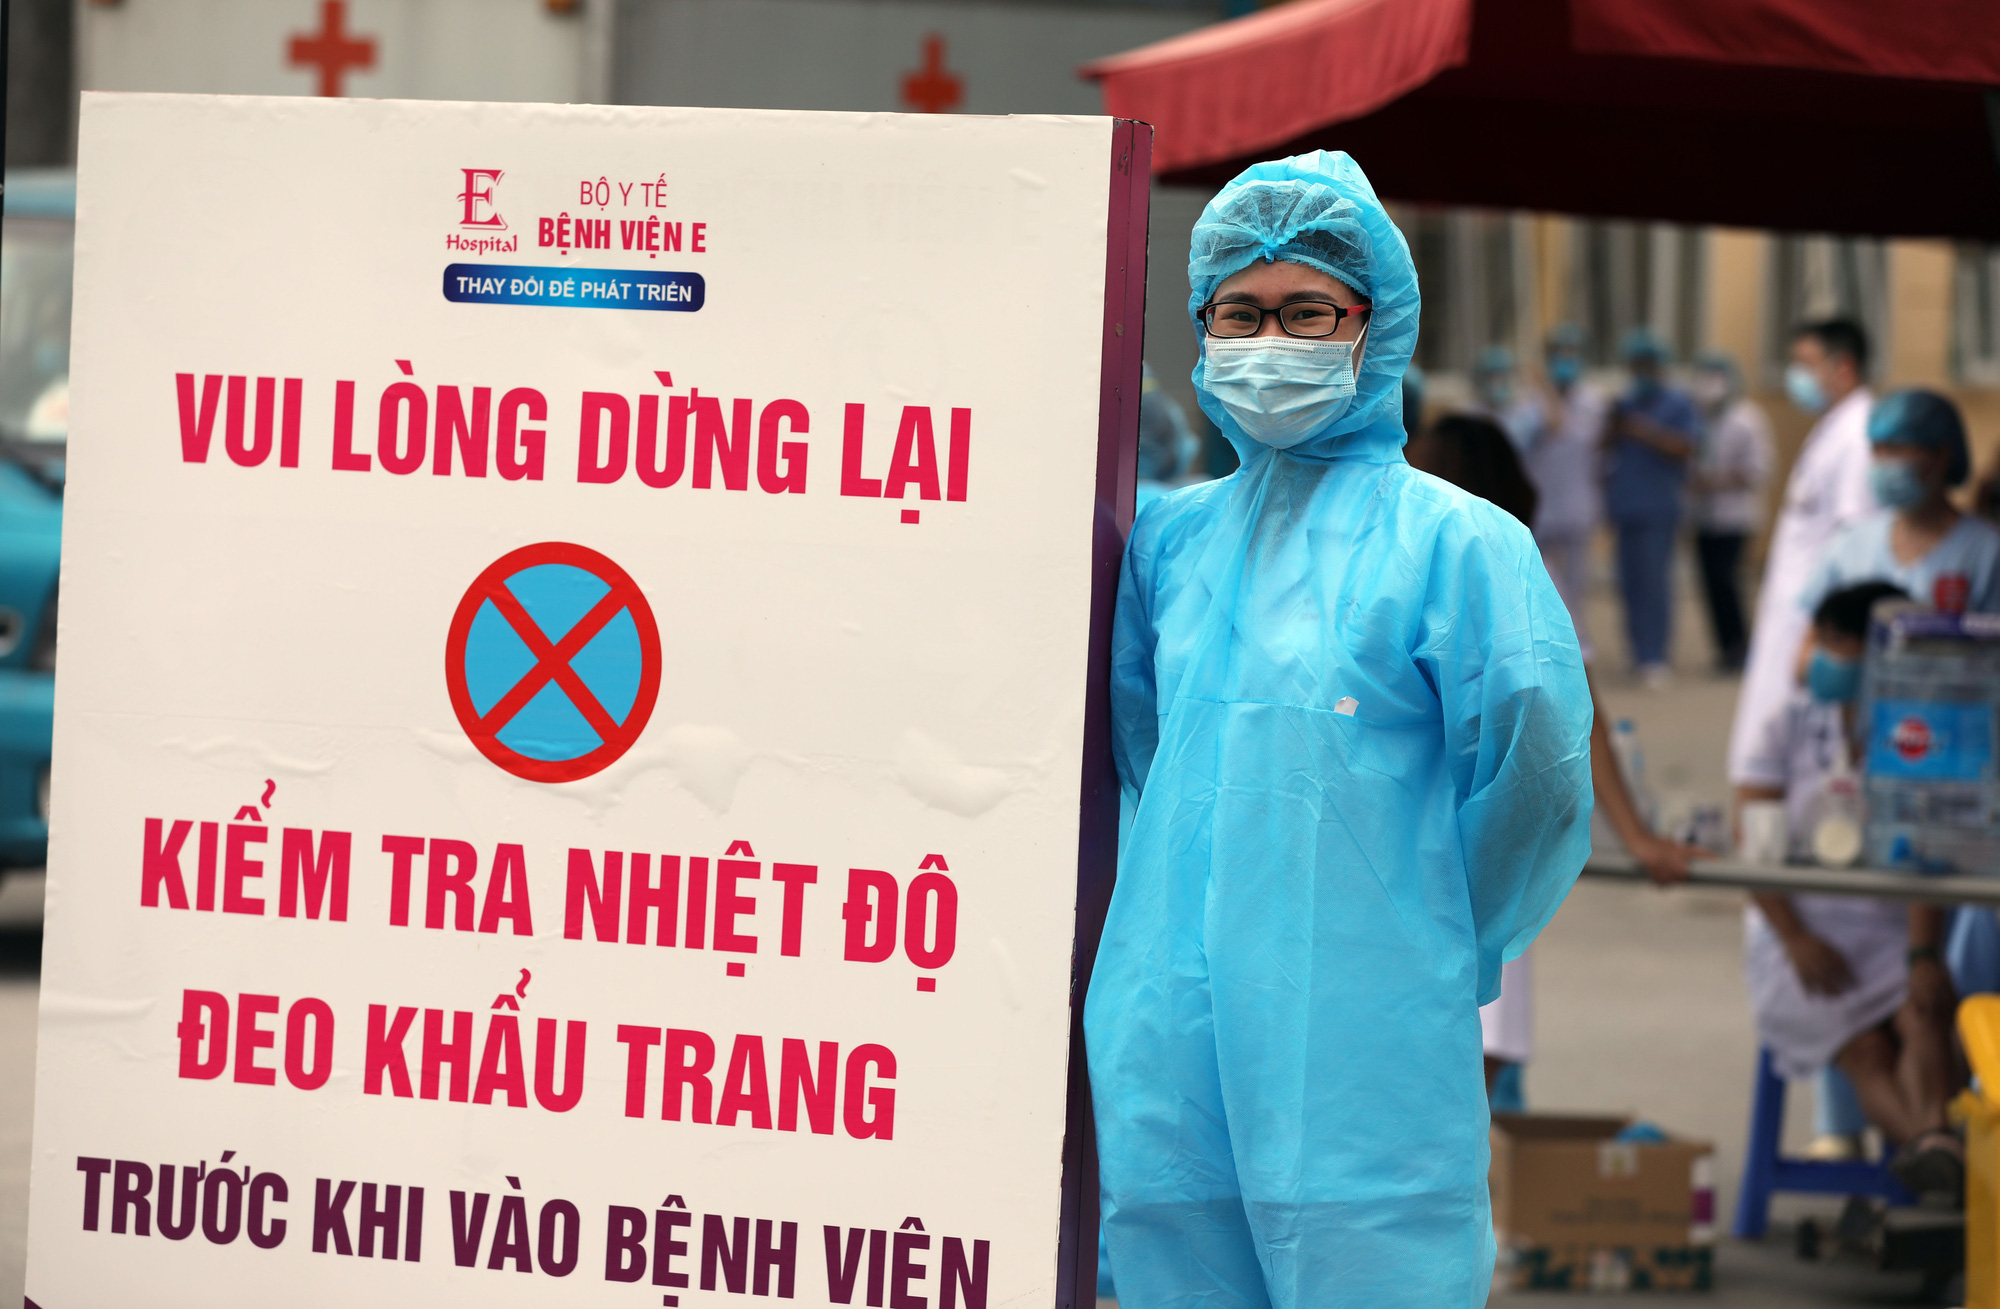 Vietnam records 8 imported COVID-19 cases, tally now 1,168